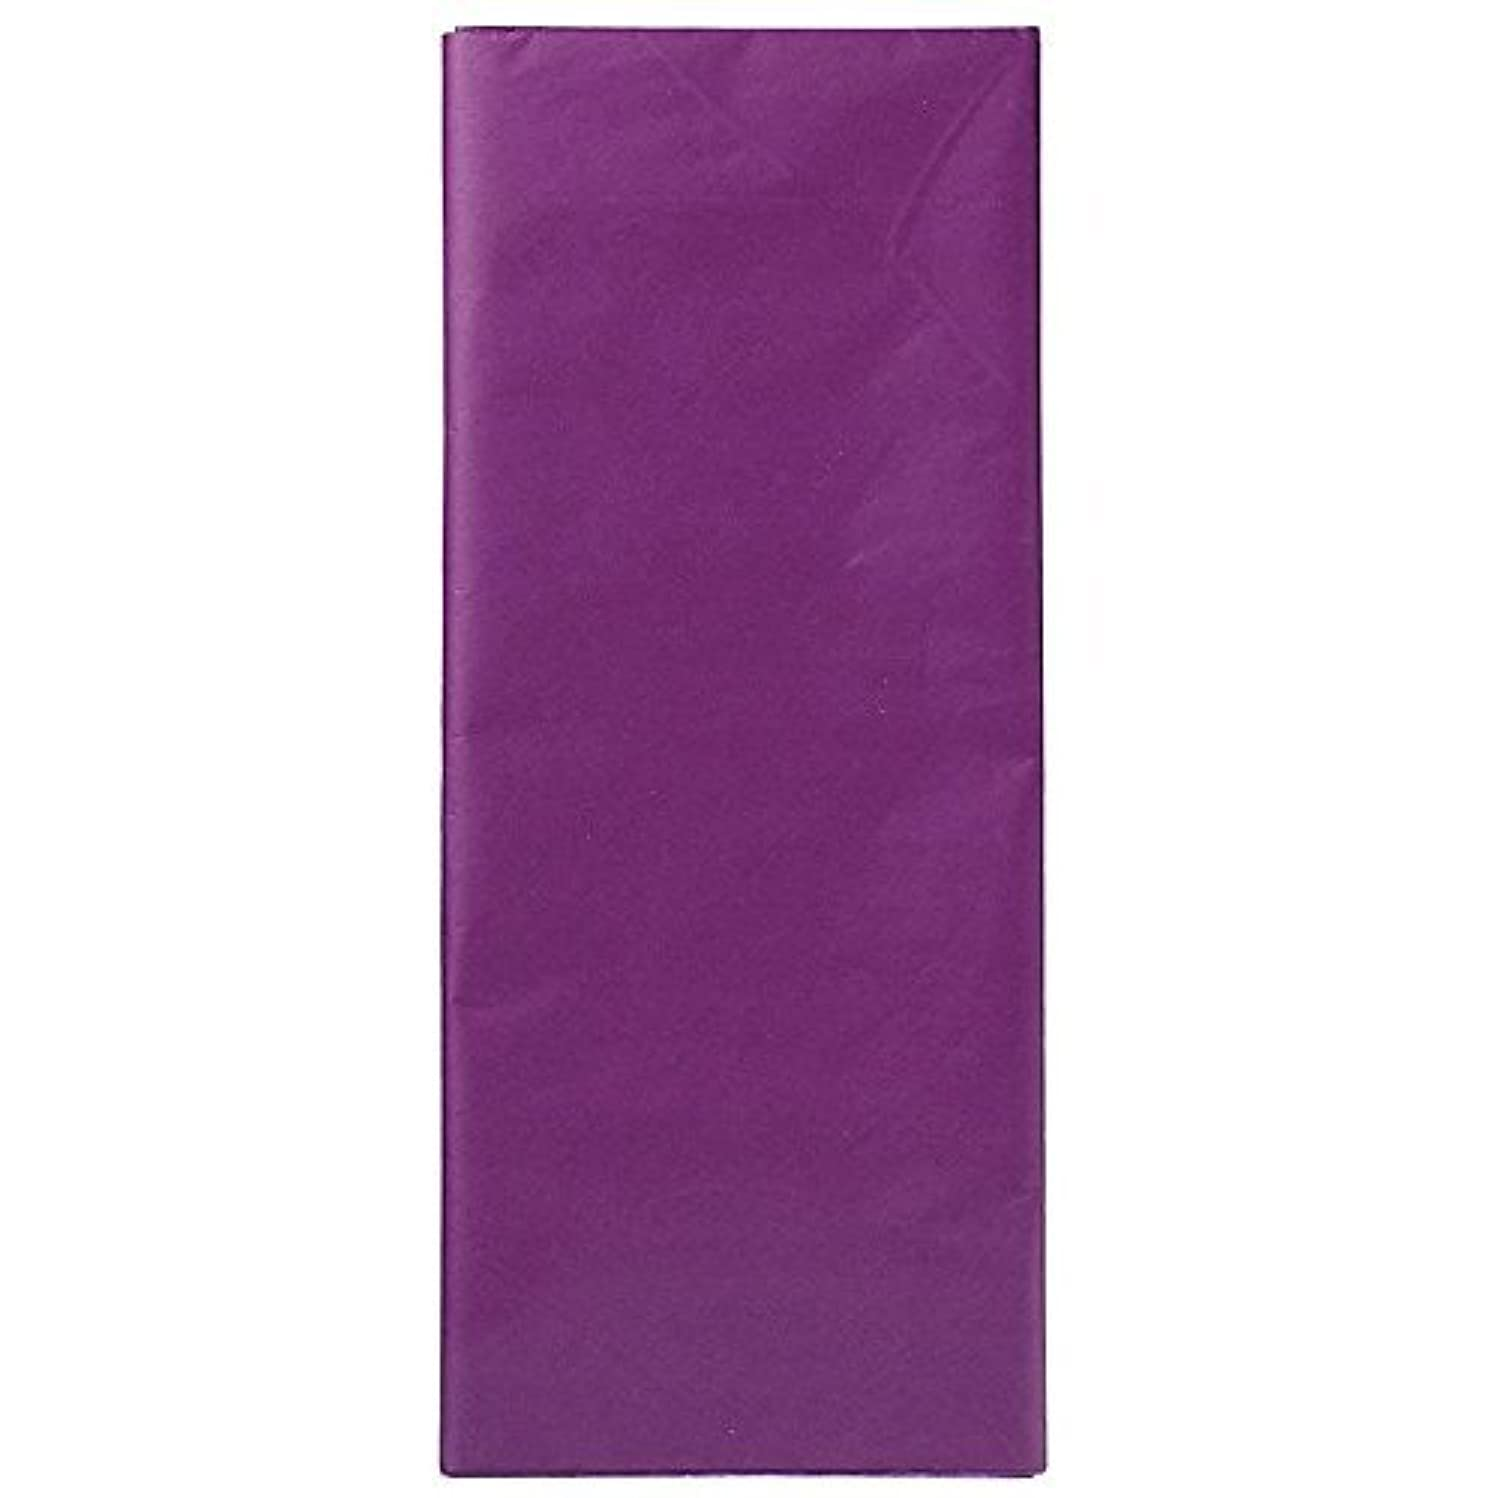 RetailSource Colored 100 Sheet Pack Tissue Paper, 1, Purple